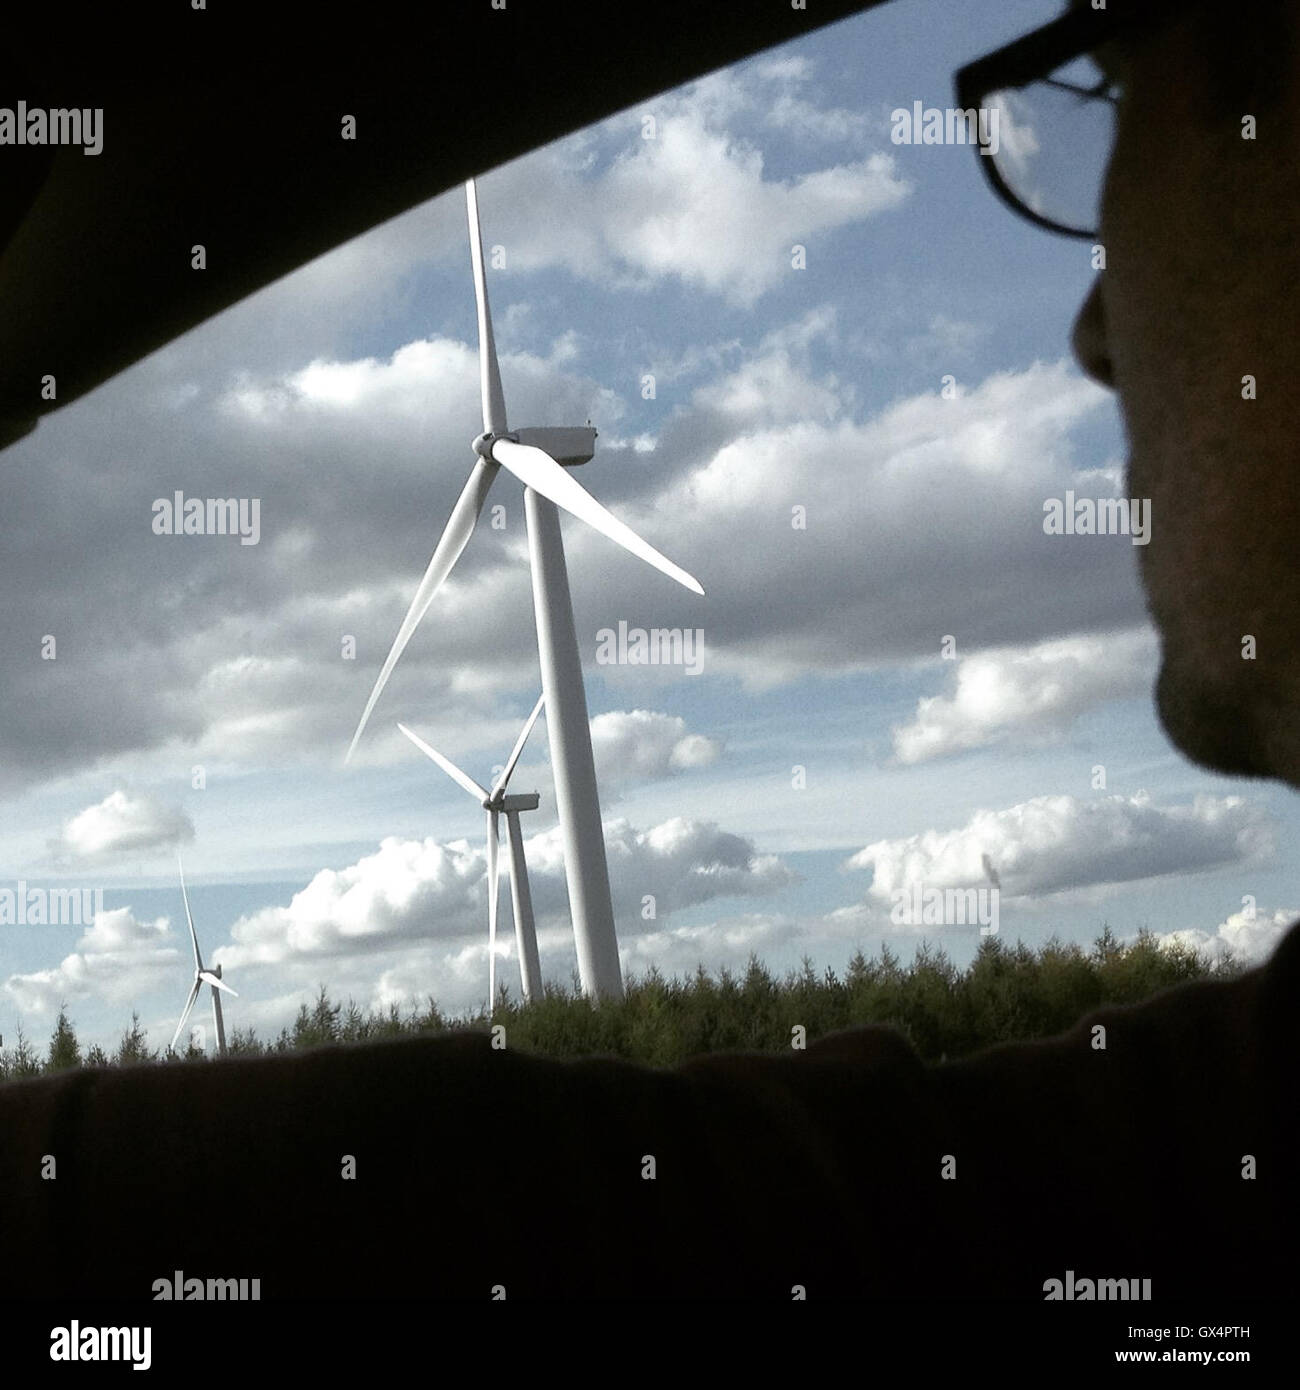 Windfarm on the M8 motorway, in Glasgow, Scotland, on 5 May 2016. - Stock Image